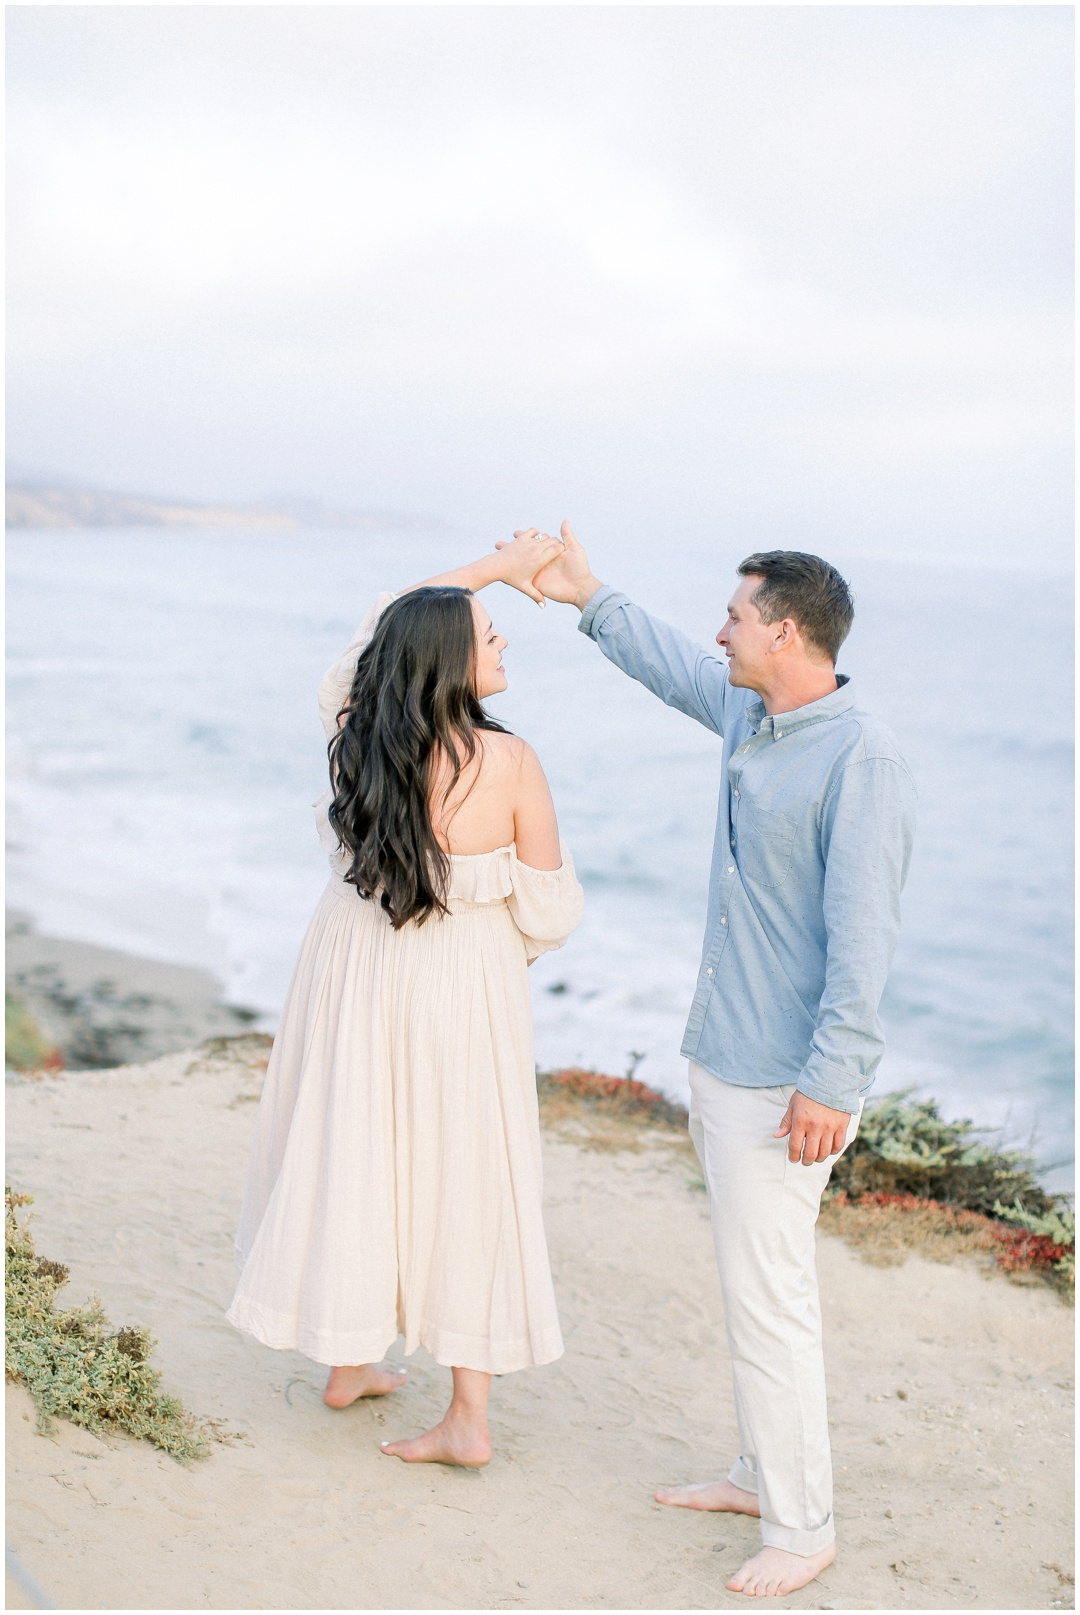 Newport_Beach_Newborn_Light_Airy_Natural_Photographer_Newport_Beach_Photographer_Orange_County_Maternity_Photographer_Cori_Kleckner_Photography_Newport_Beach_Photographer_Candice_Byle_Candice_Fillippini_Kevin_Fillippini__4144.jpg